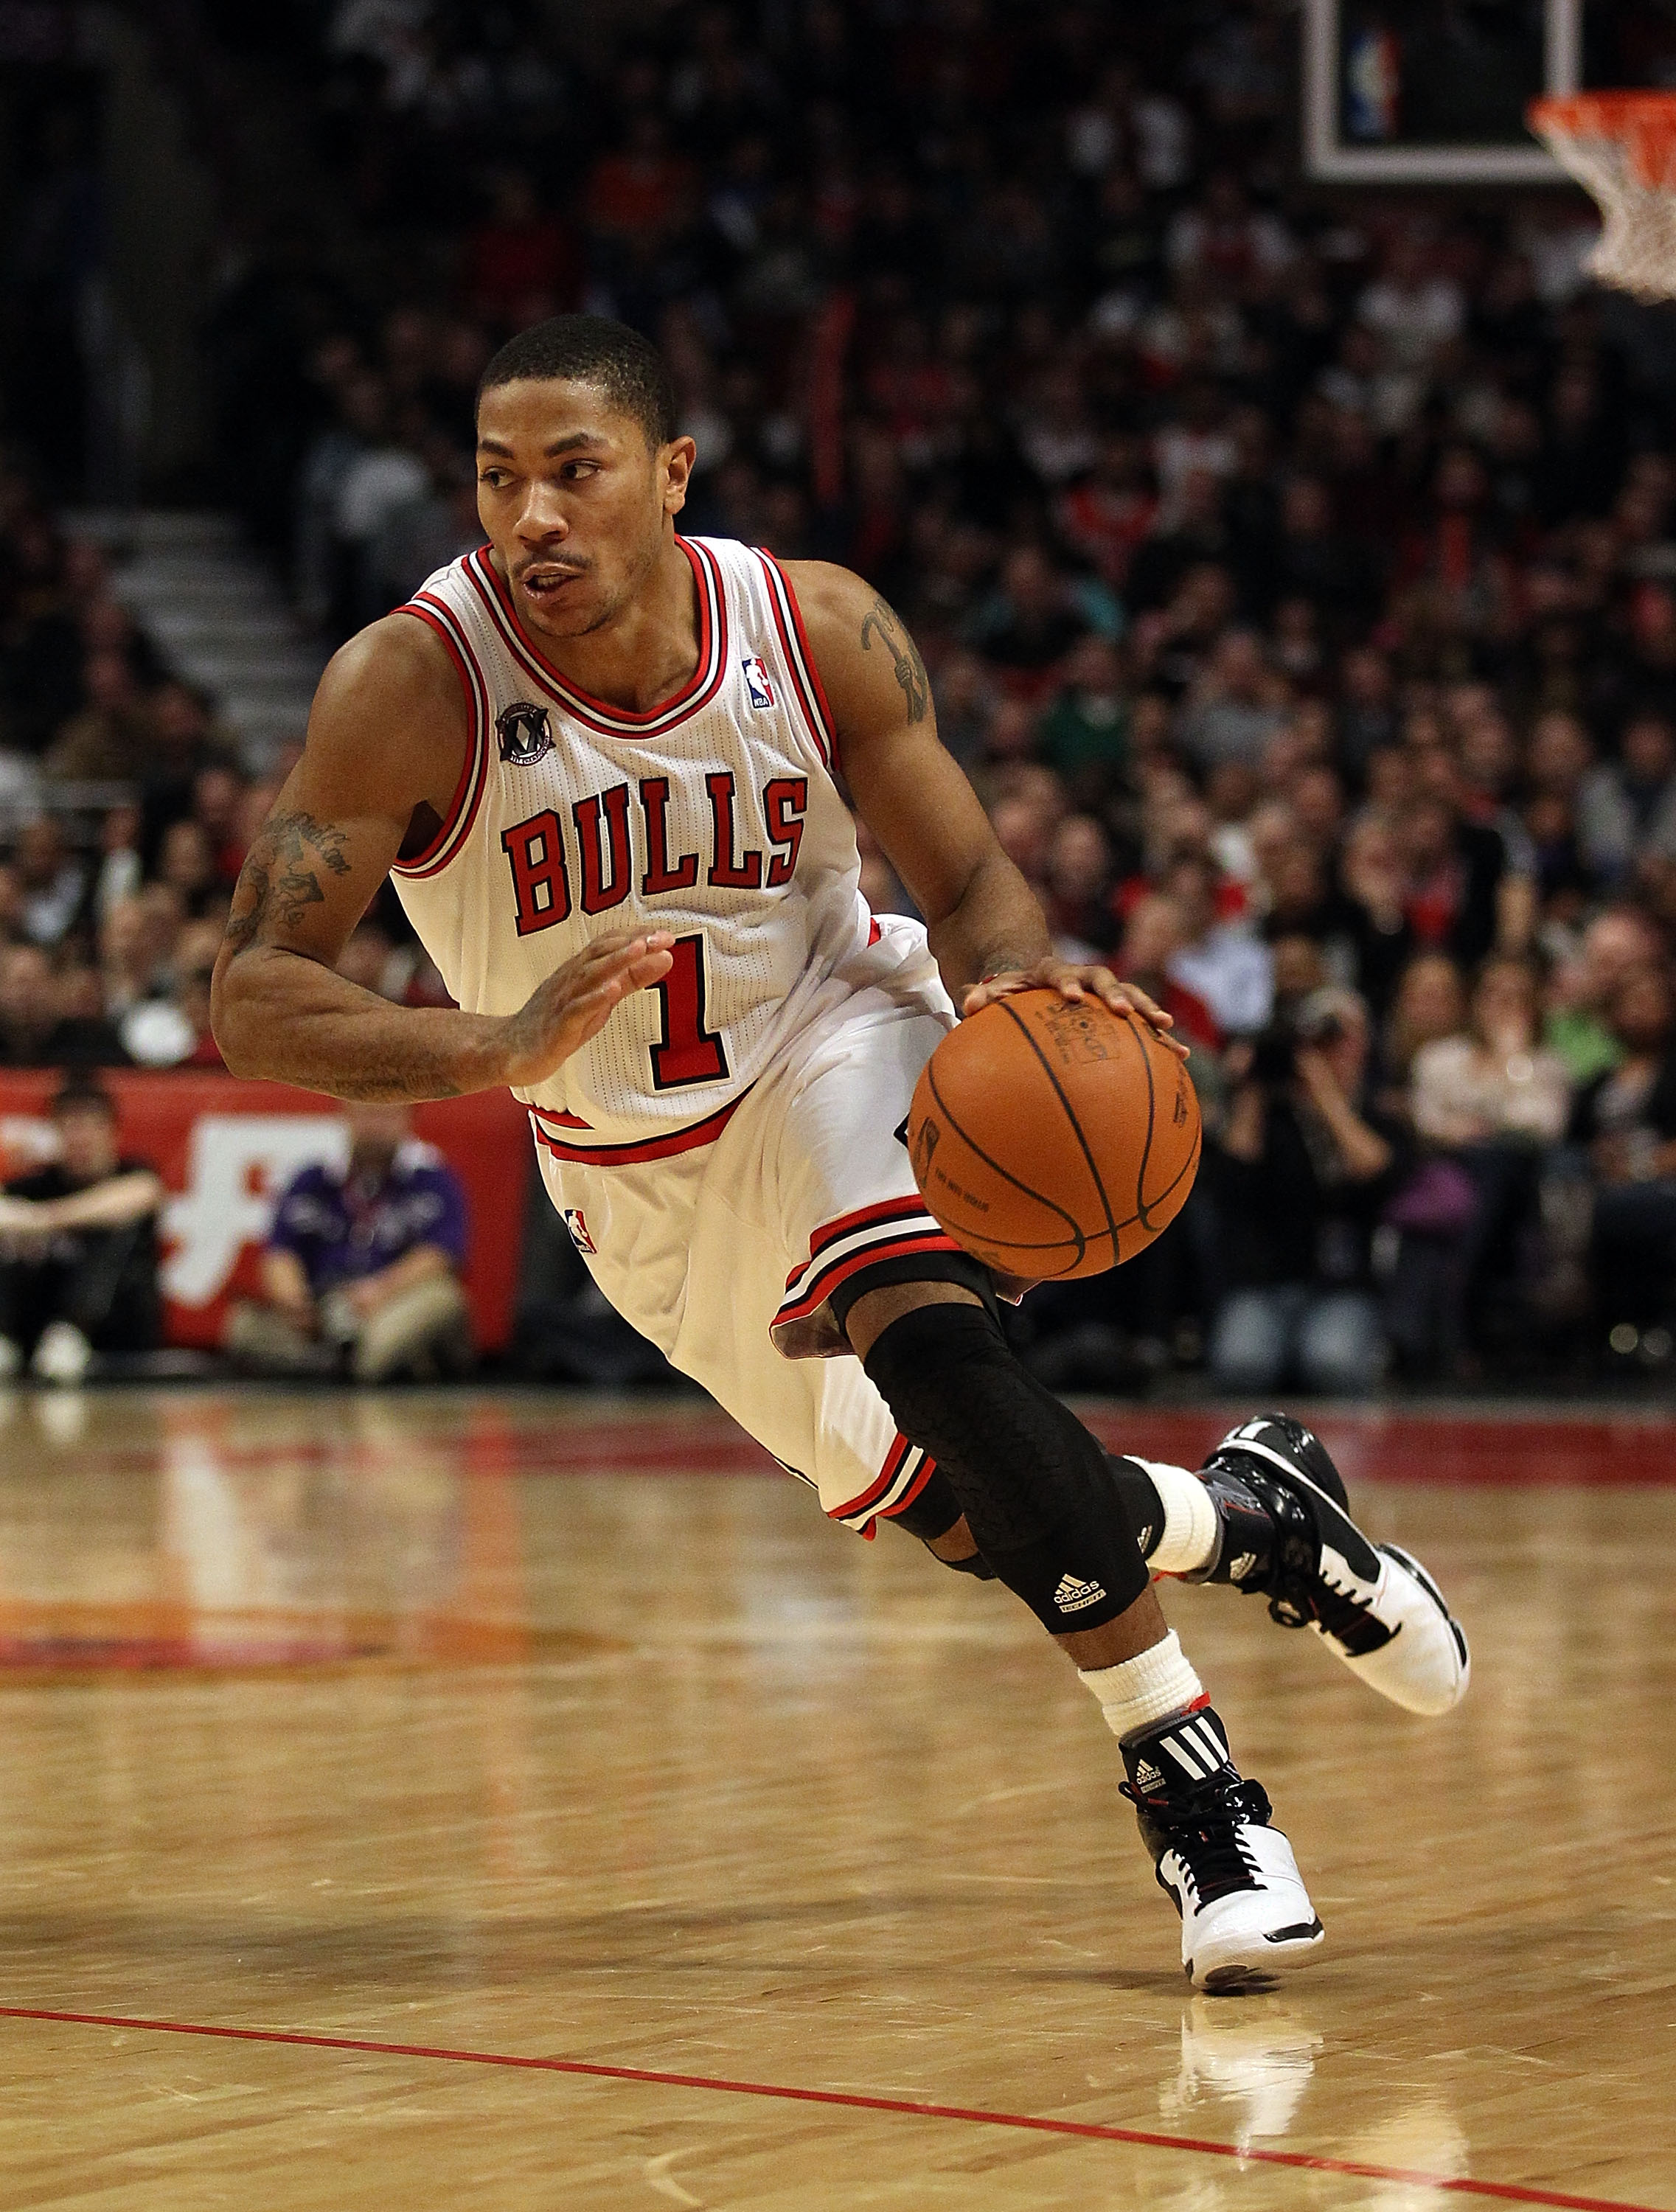 a36ed6907871 Derrick Rose  10 Reasons He Will Soon Be the Face of the NBA ...